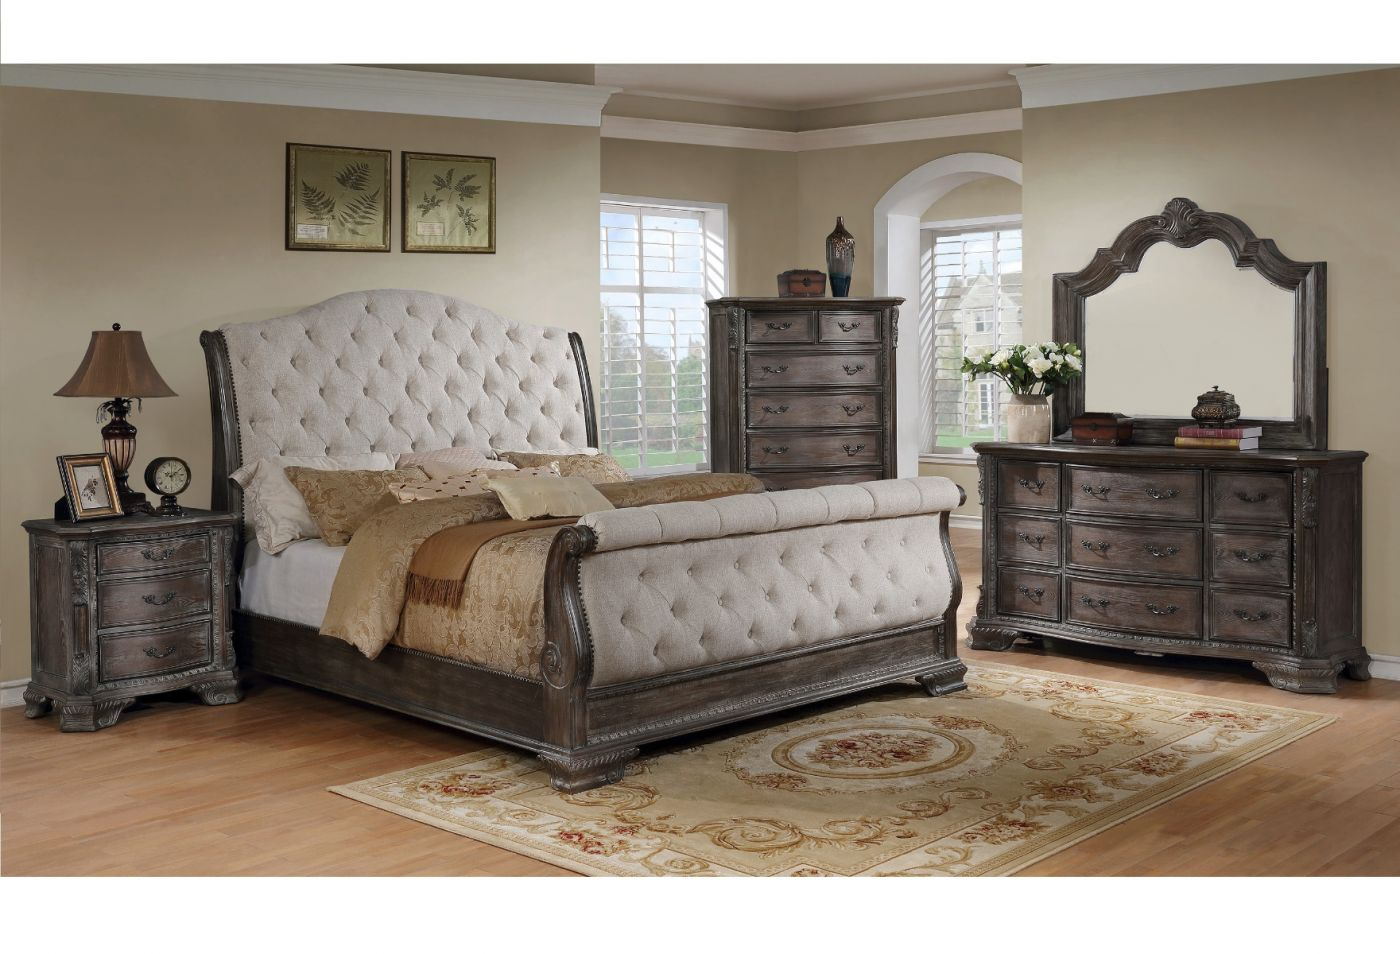 king sleigh bedroom sets. Upholstered Gray King Sleigh Bedroom Set  My Furniture Place